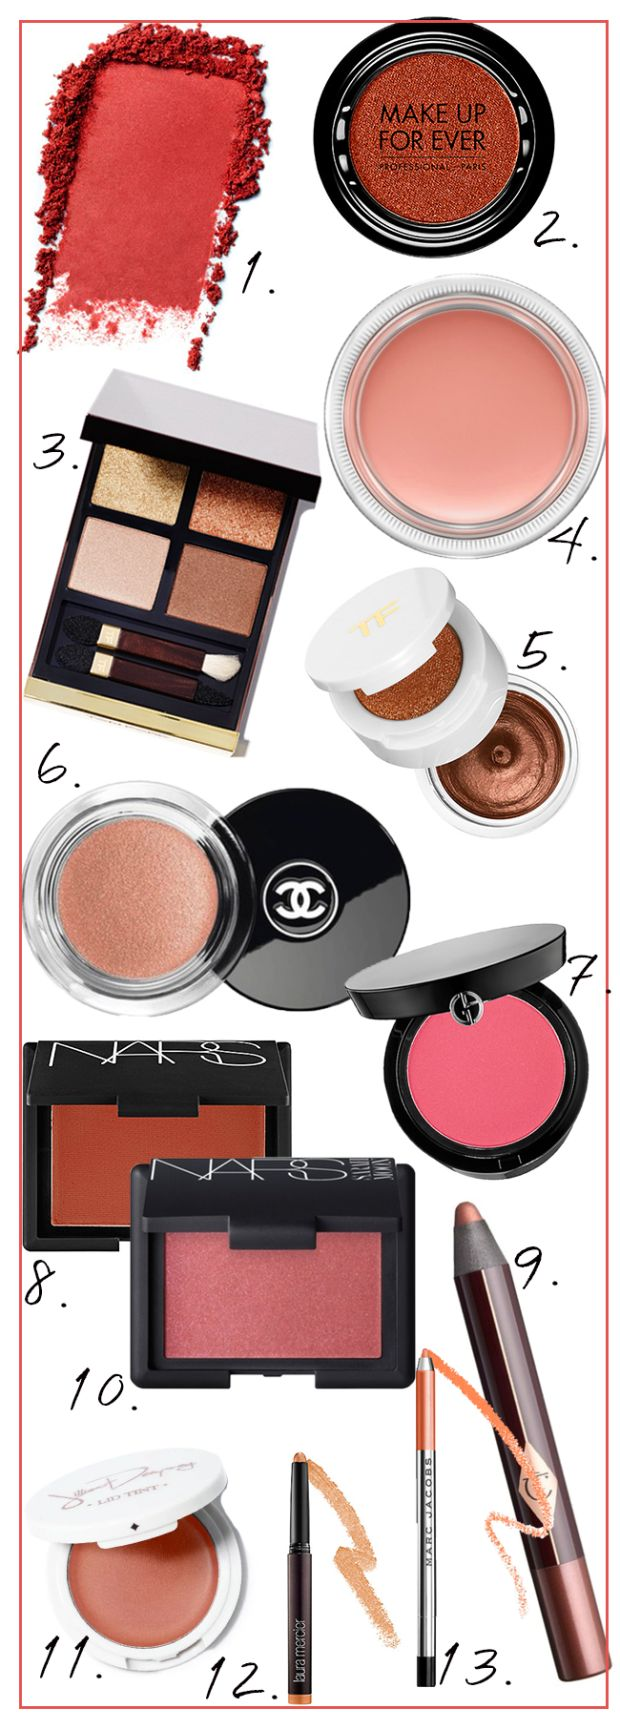 Why I'm crushing on pink and red eye shadow this holiday season.